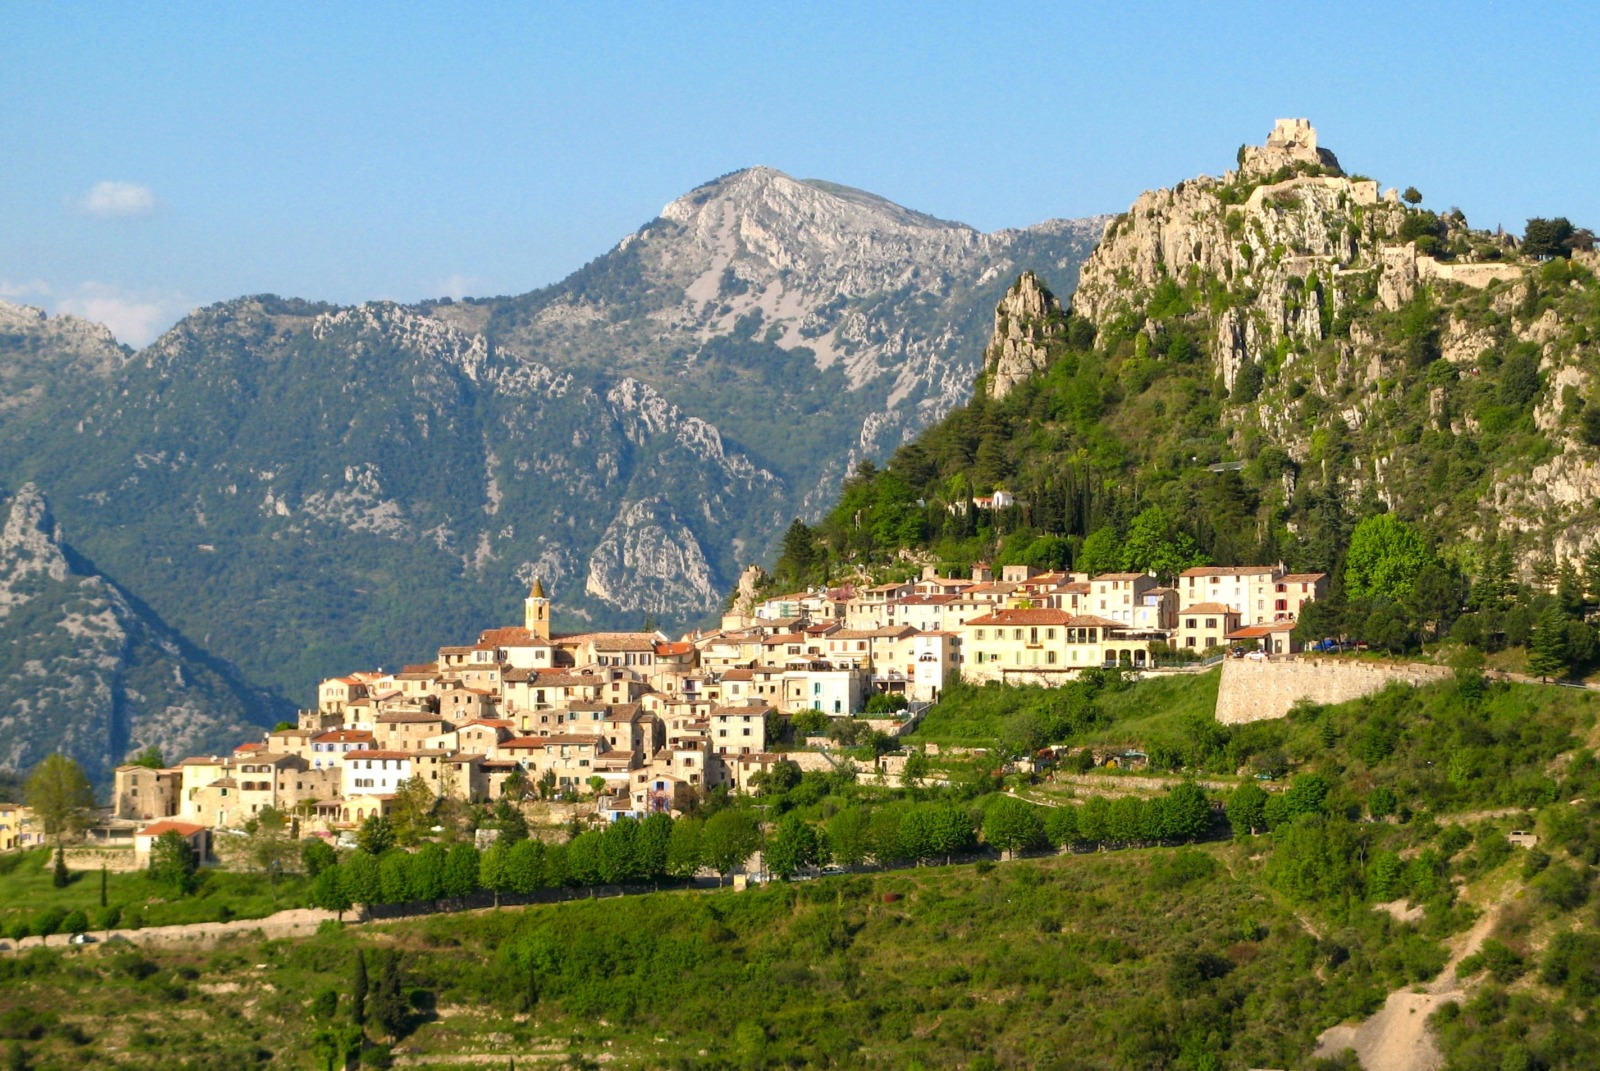 General view of Sainte-Agnès © Patrick Rouzet - licence [CC BY-SA 3.0] from Wikimedia Commons